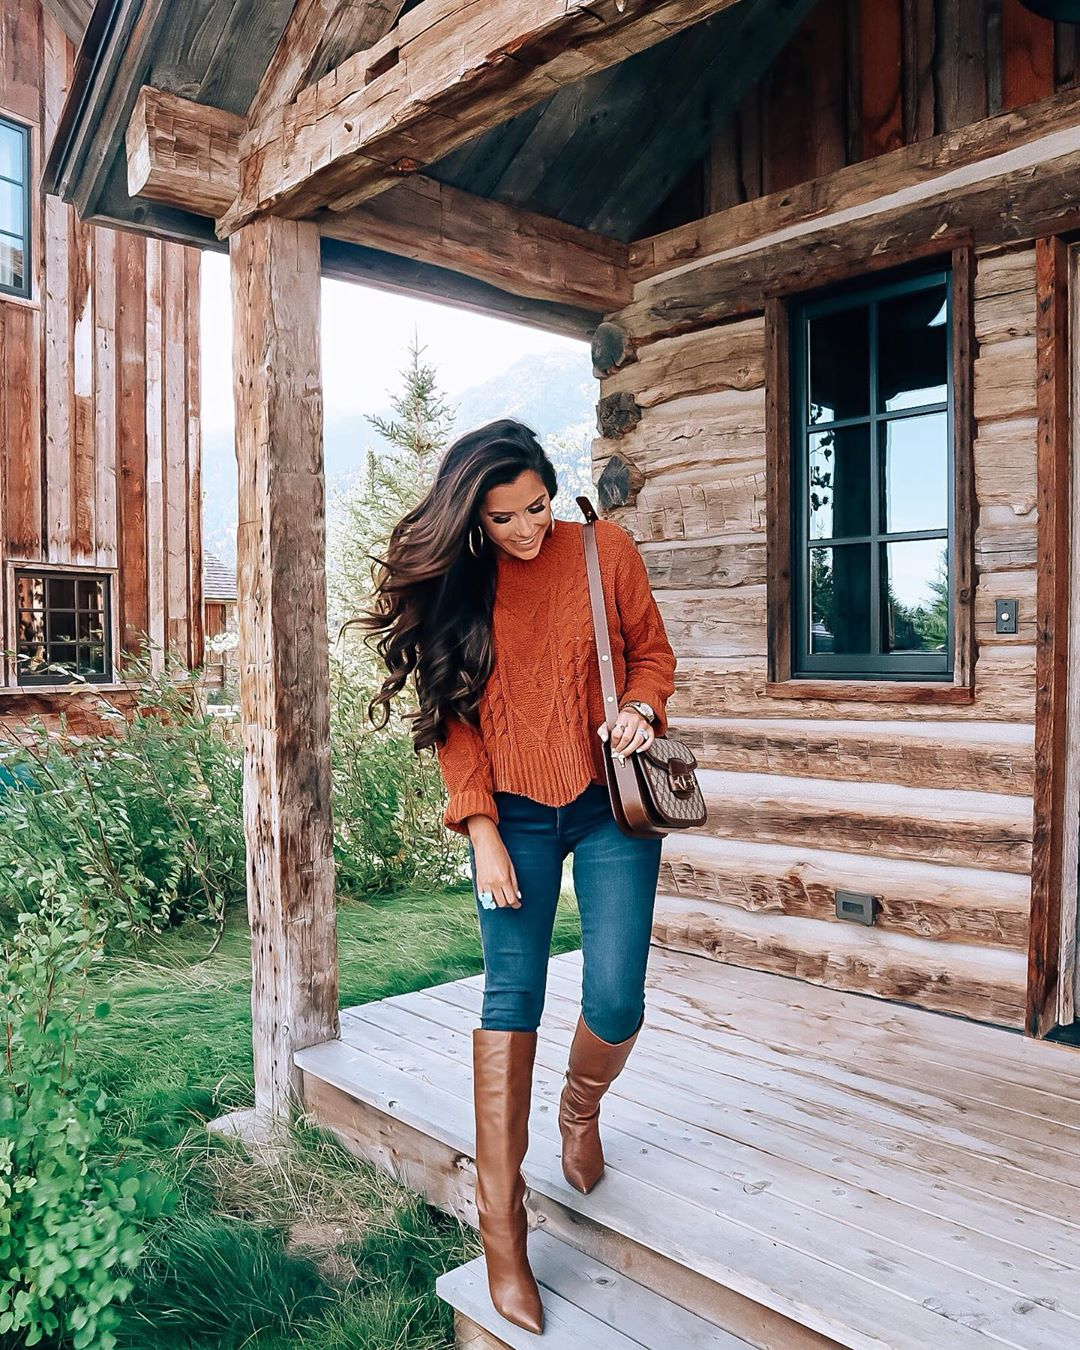 Most Popular Outfits On Sale That I've Worn - All 50% Off! by popular Oklahoma fashion blog, The Sweetest Thing: image of a woman wearing Mid Rise Denim Perfect Lift Dark Wash Leggings.